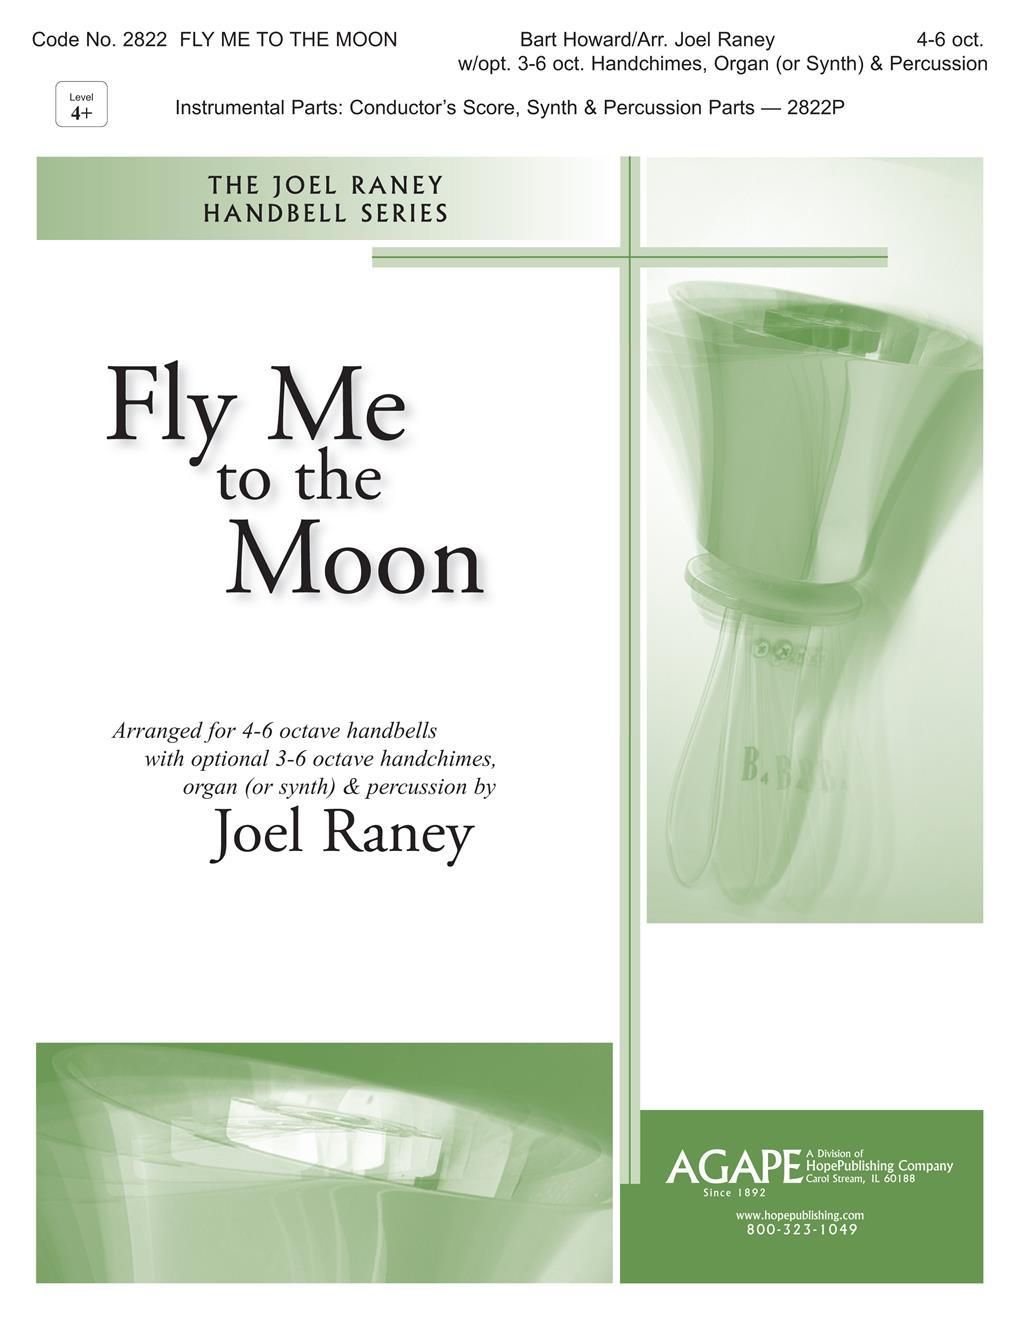 Fly Me to the Moon - 4-6 oct. w-3-6 oct. chimes Cover Image